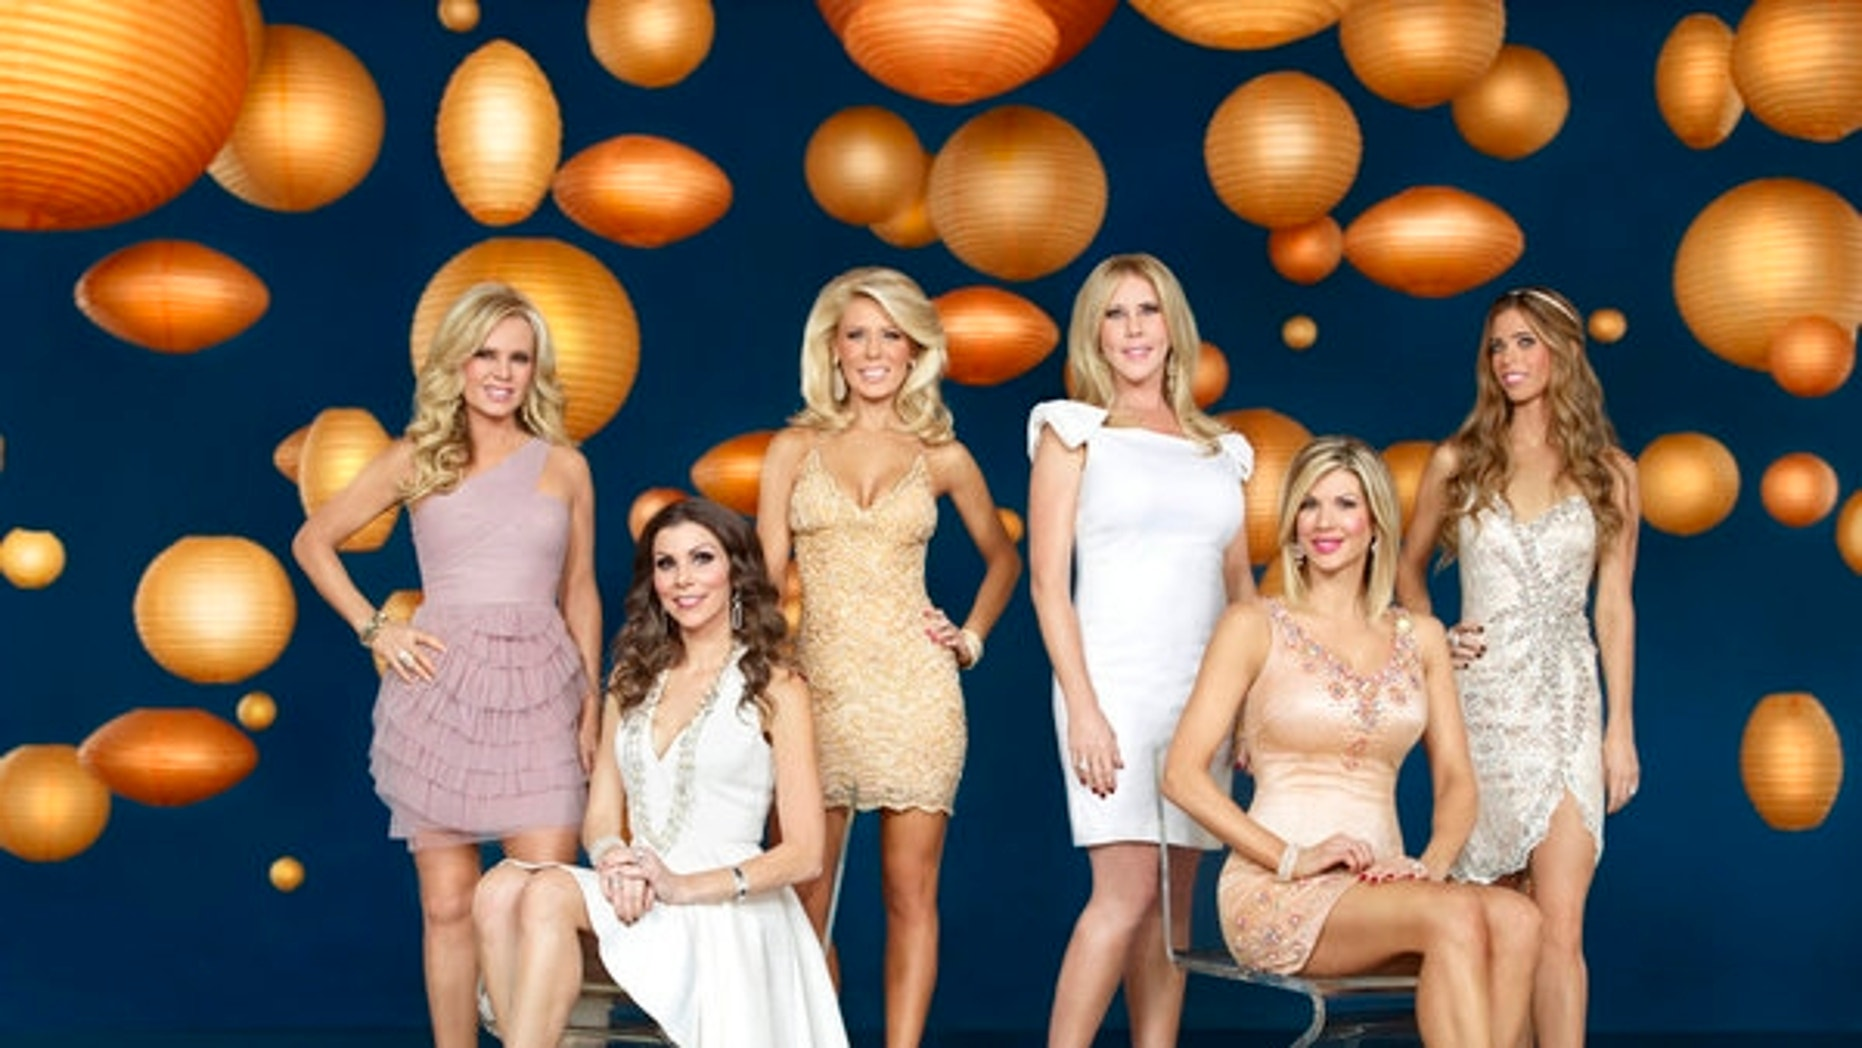 """Tamra Barney, Heather Dubrow, Gretchen Rossi, Vicki Gunvalson, Alexis Bellino, Lydia McLaughlin pose in a """"Real Housewives of Orange County"""" promotional photo."""